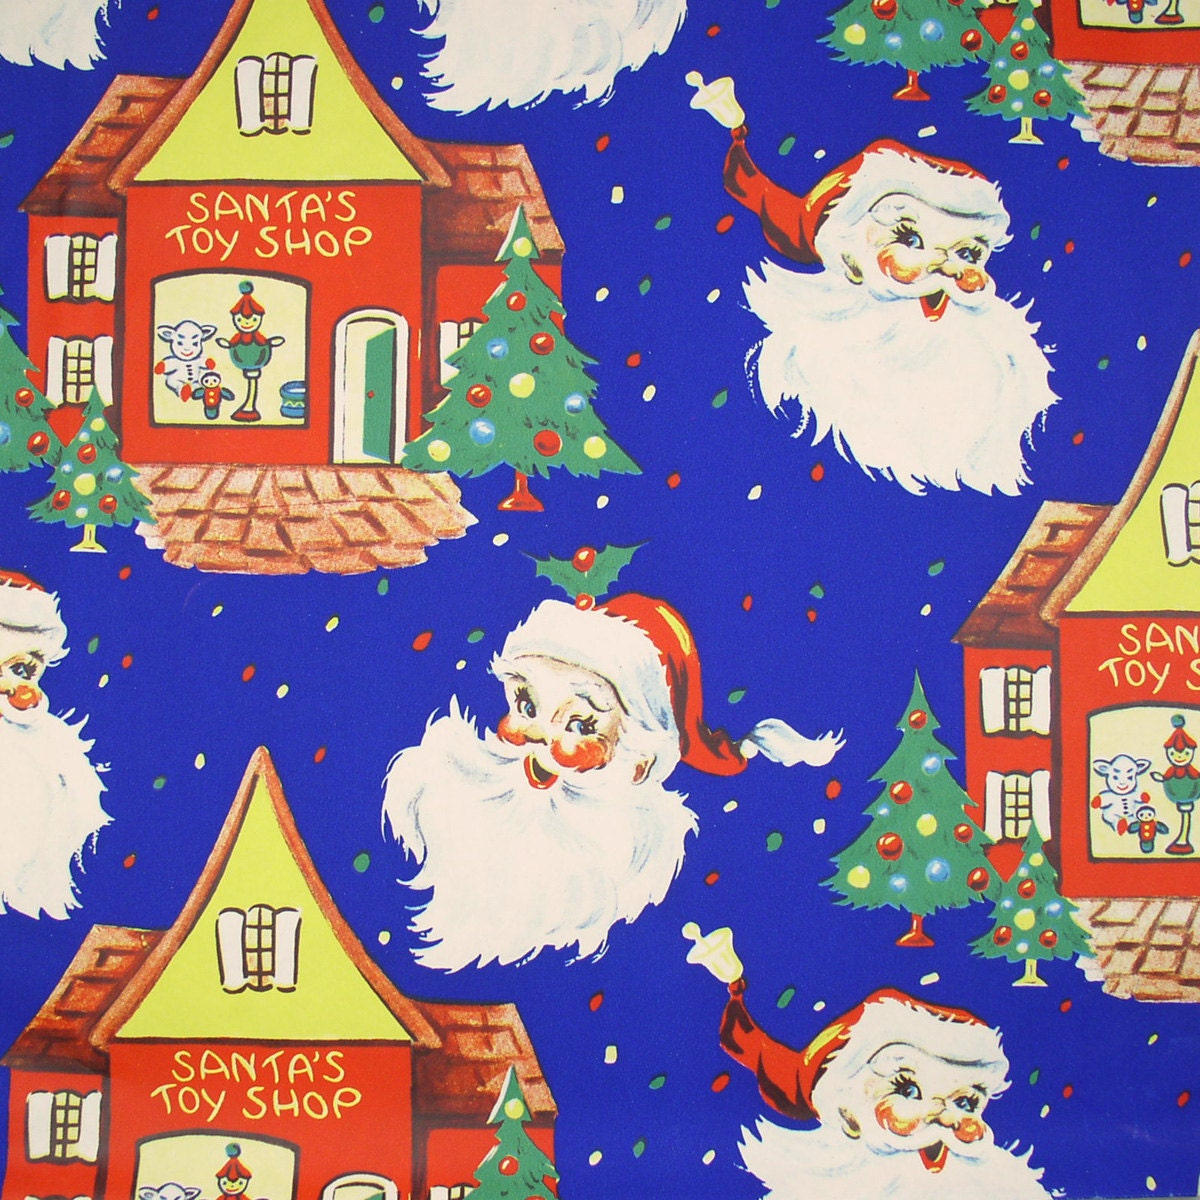 SANTA'S Toy SHOP - Vintage Christmas Wrapping Paper Gift Wrap